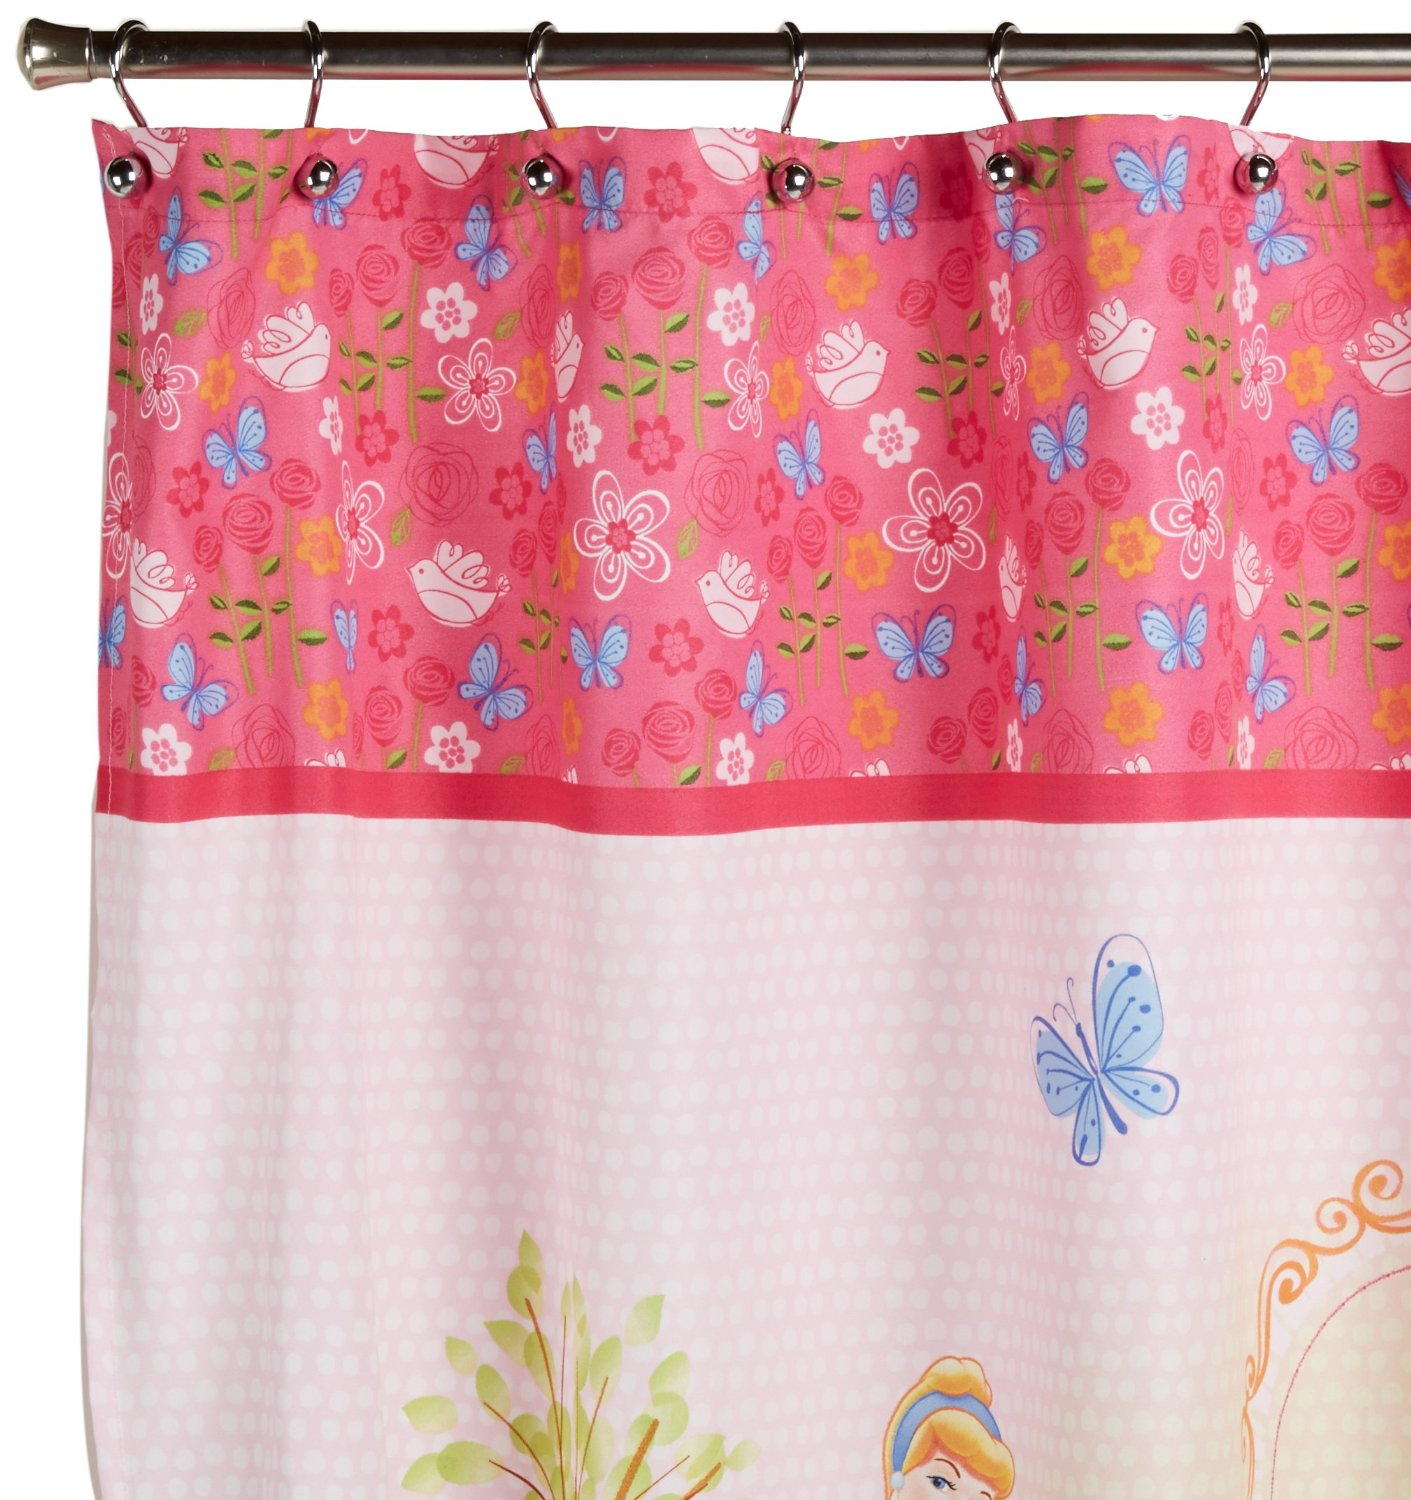 Get Quotations Disney Princess Microfiber Shower Curtain Features 4 Princesses 70in X 72in